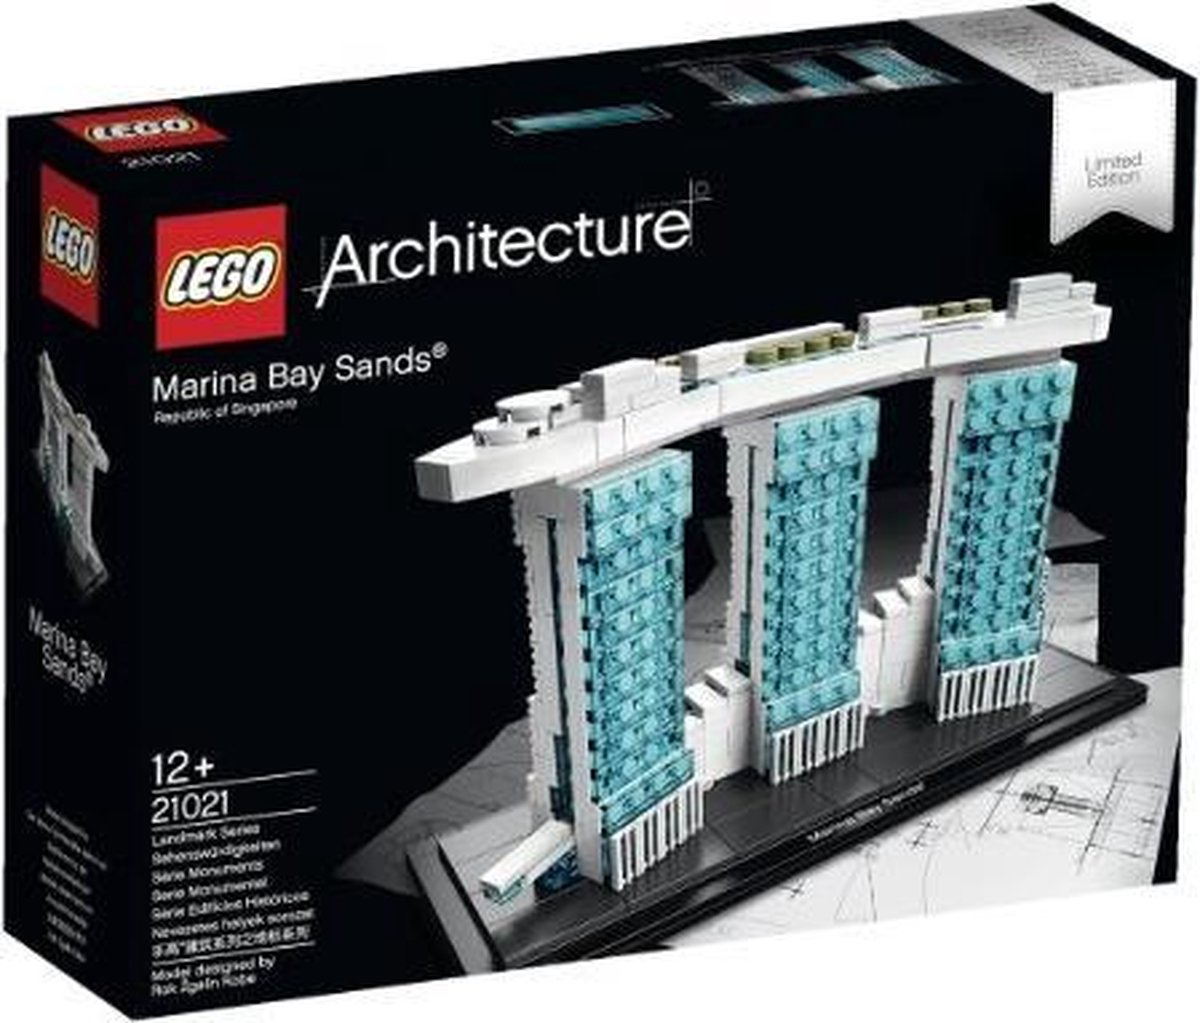 21021 LEGO Architecture Marina Bay Sands